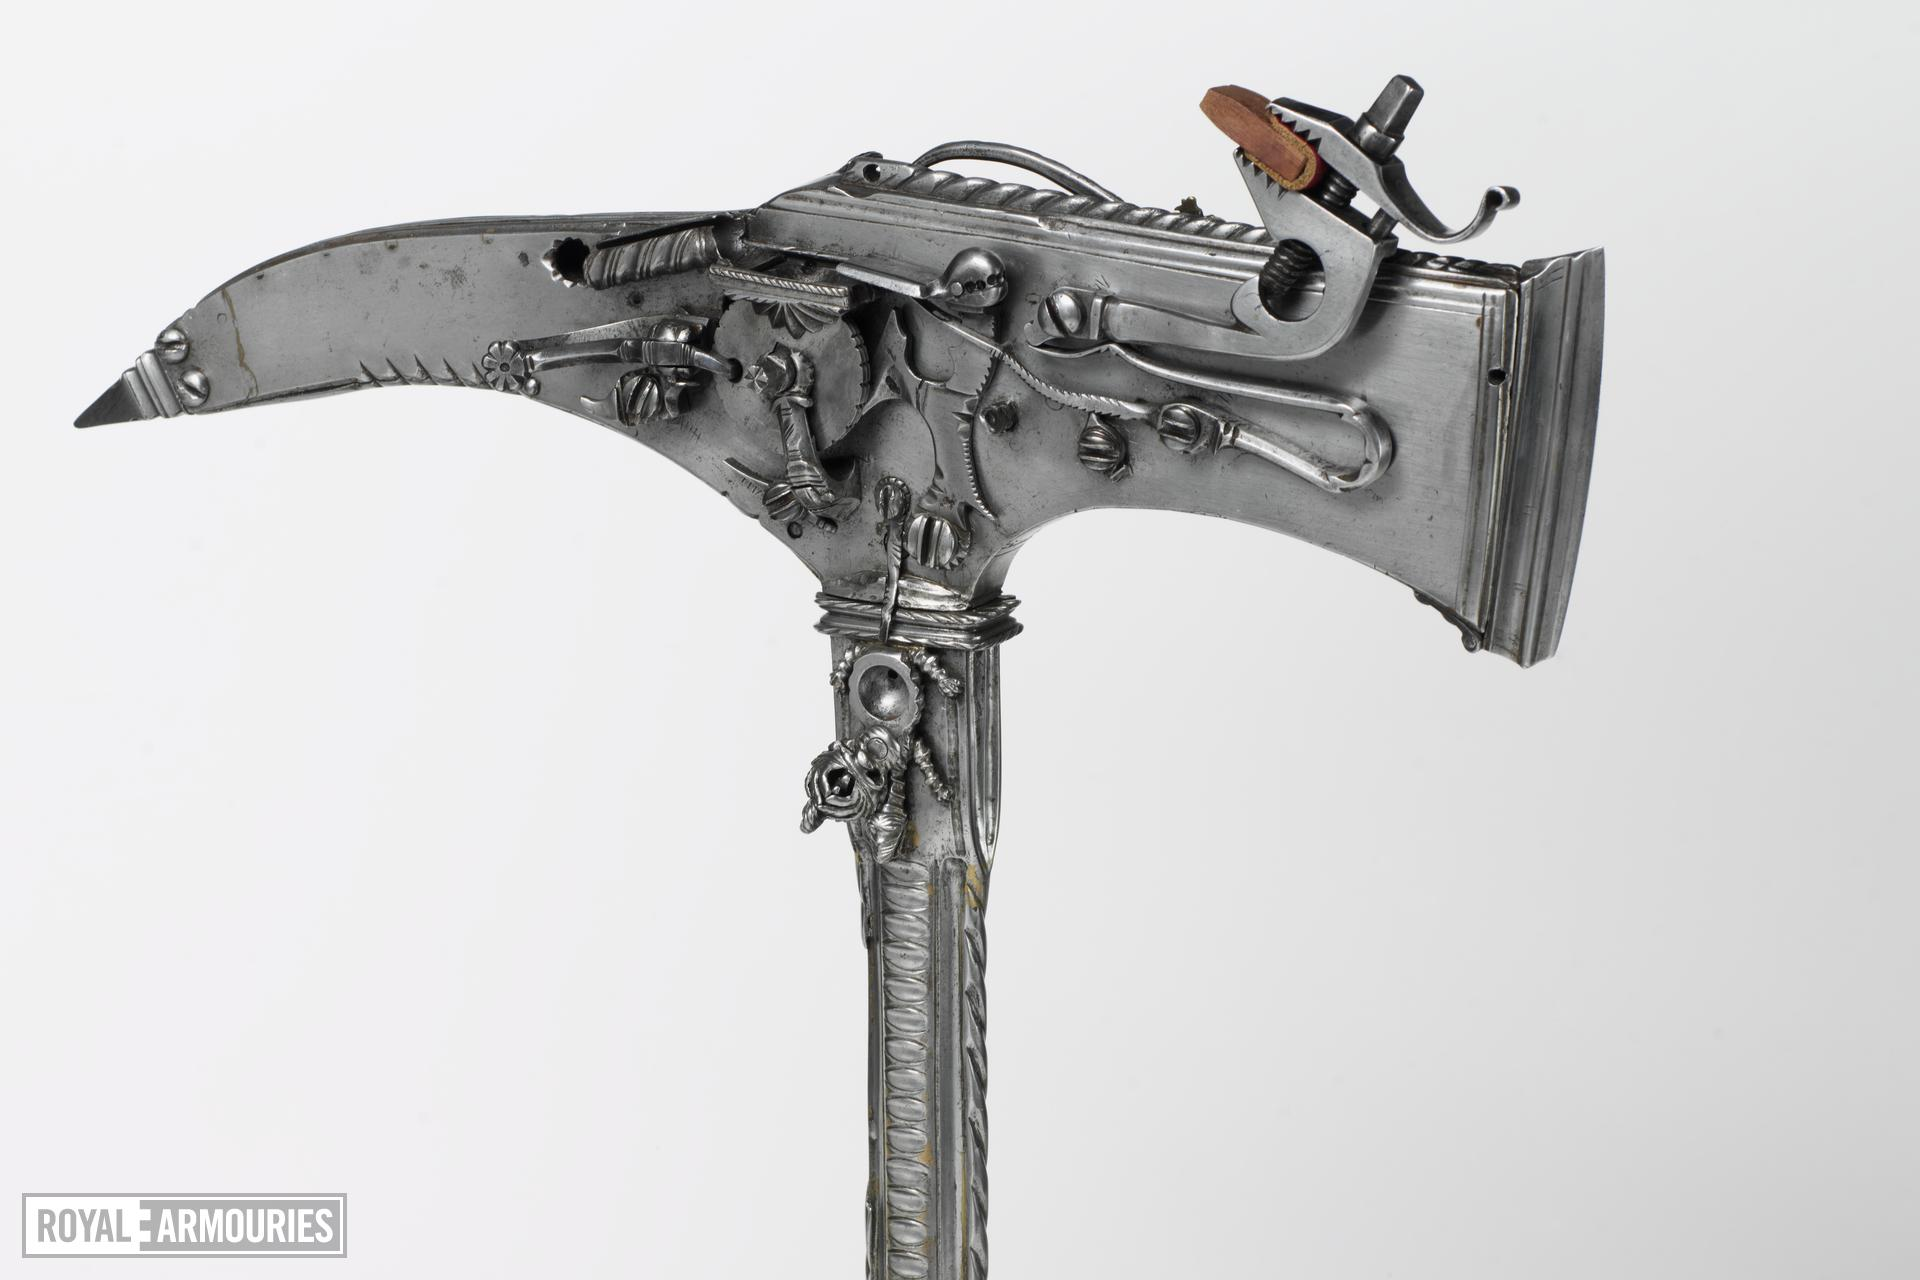 Wheellock combination axe and pistol Possibly a novelty or curiosity